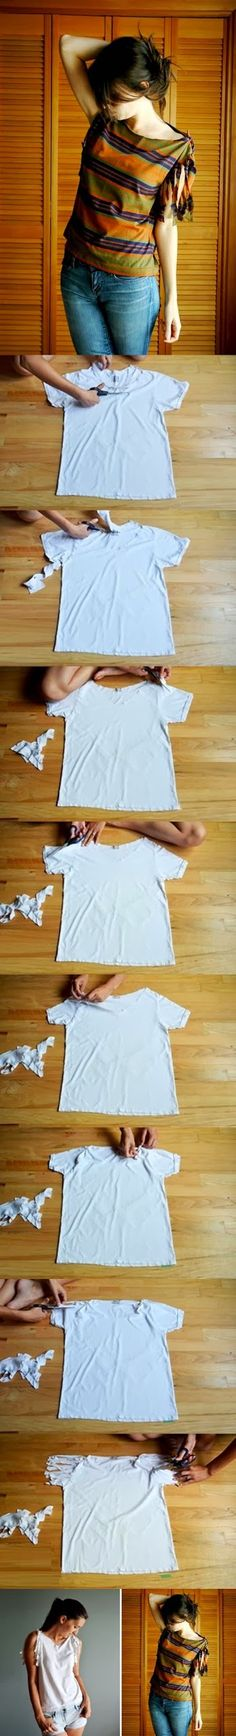 Diy clothes no sewing shirts projects 39 Ideas Diy clothes no sewin. Diy clothes no sewing shirts projects 39 Ideas Diy clothes no sewin. Diy Fashion Tshirt, Diy Fashion No Sew, T Shirt Diy, Tee Shirt, T-shirt Refashion, Diy Clothes Refashion, Sewing Shirts, Sewing Clothes, Diy Shirts No Sew